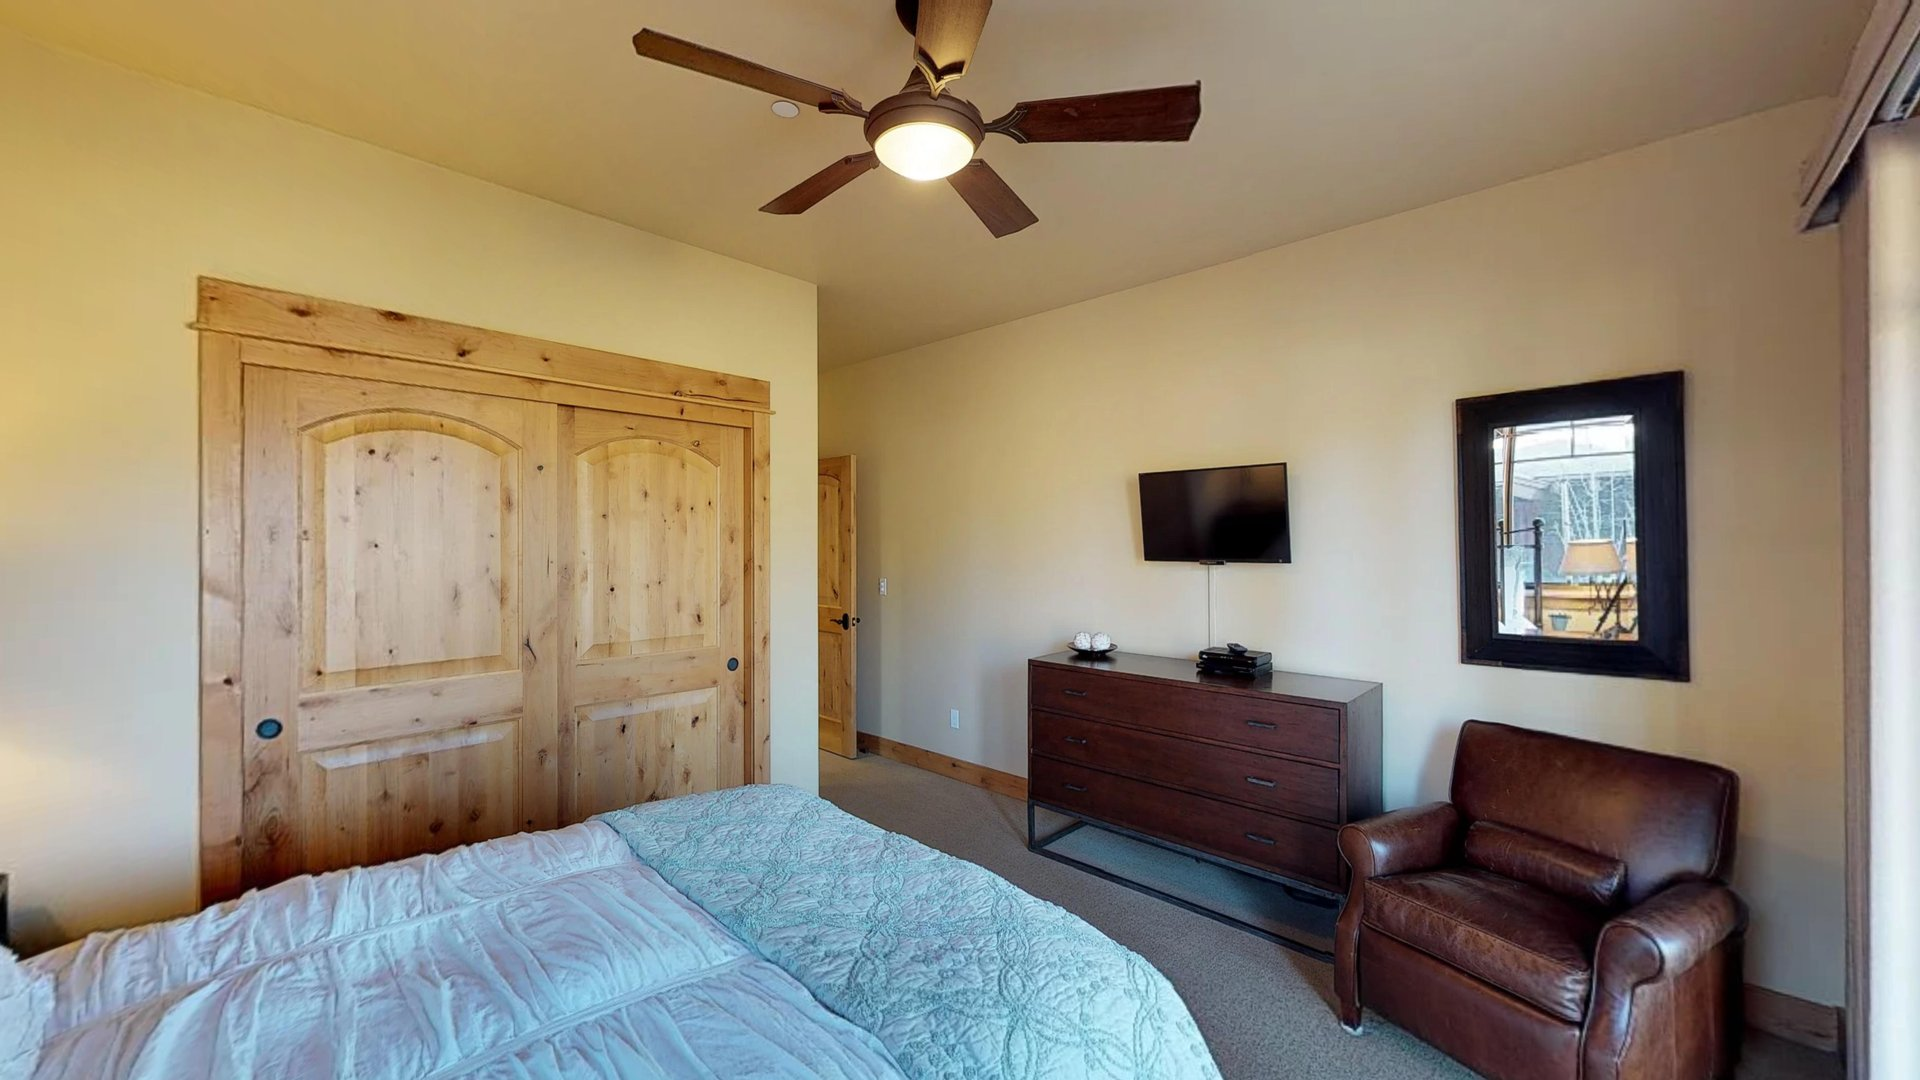 Bedroom Includes Bed, Dresser, Accent Chair, and TV on Wall.